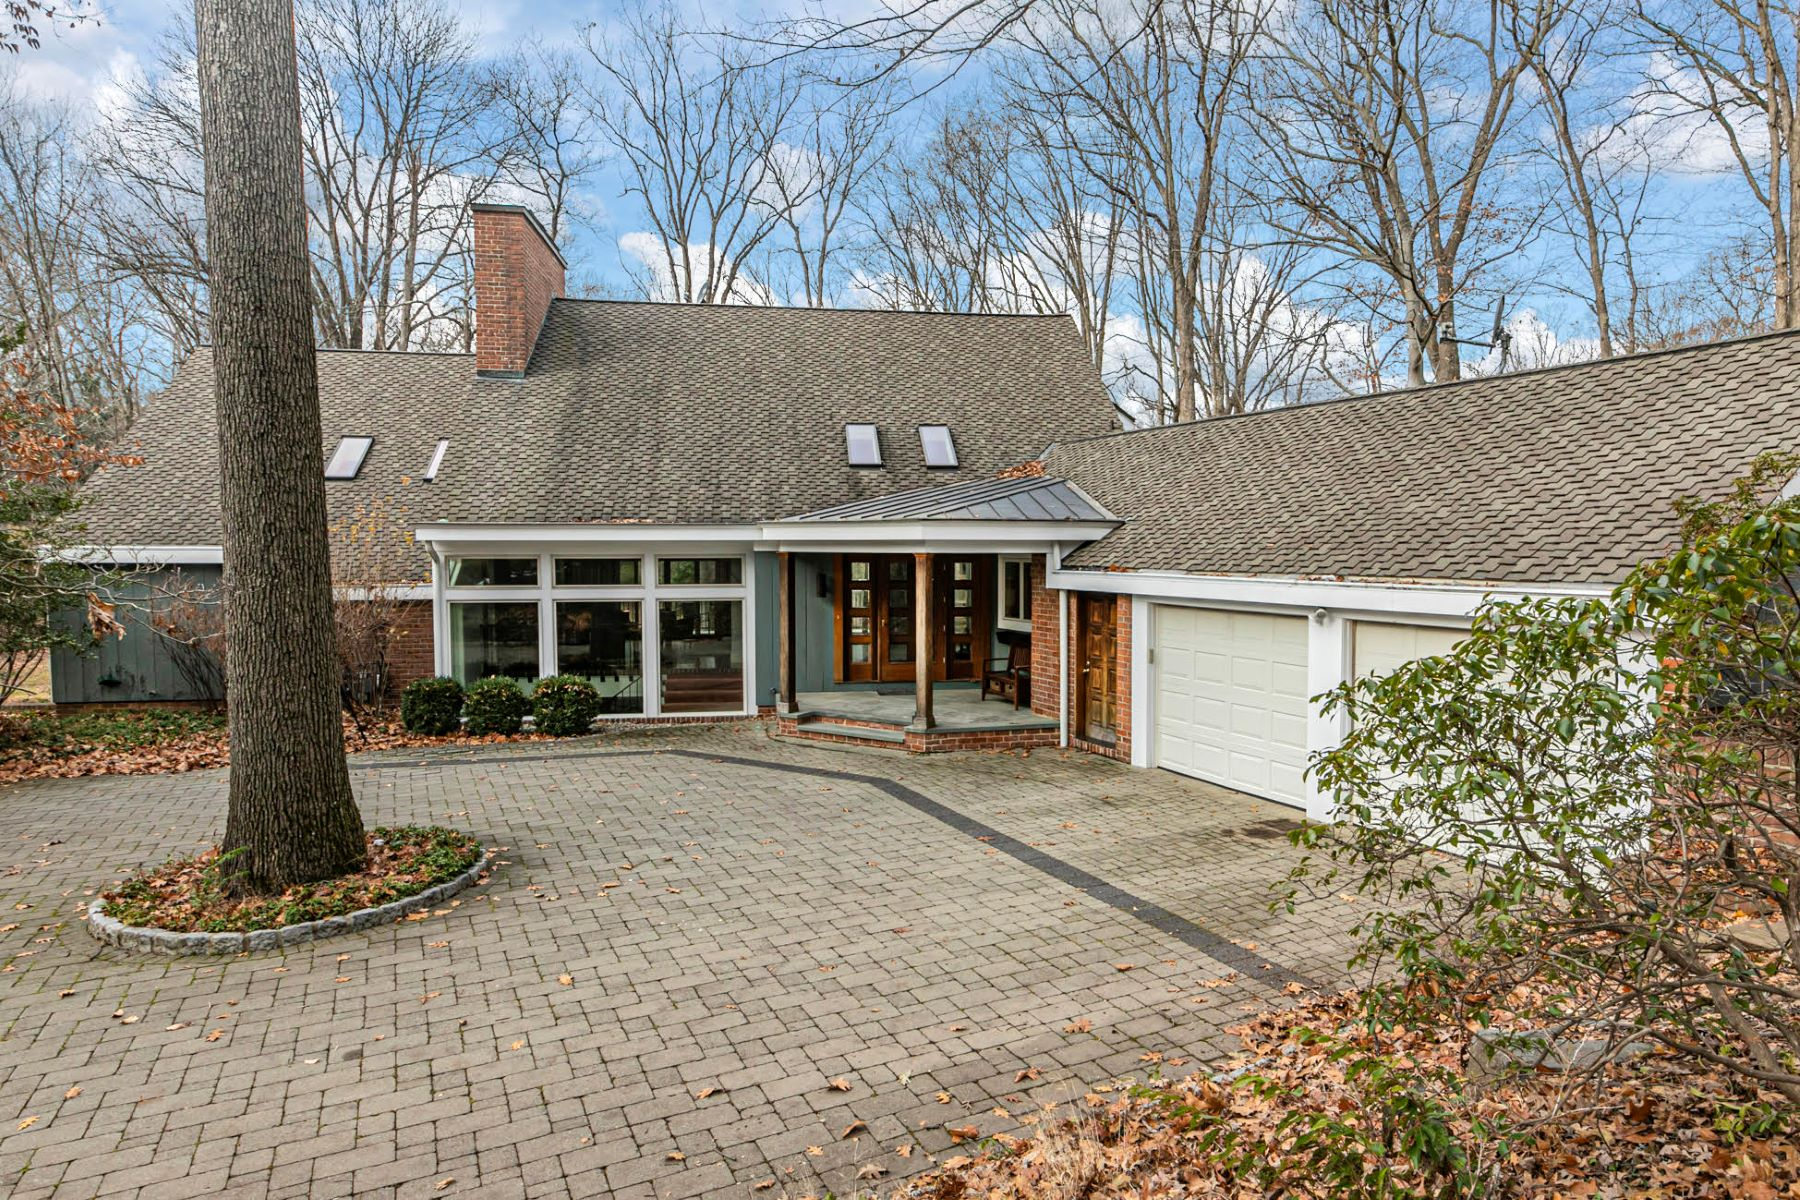 Property vì Bán tại Immaculately Presented Home With A Prized Bedens Brook View 188 Rolling Hill Road, Skillman, New Jersey 08558 Hoa Kỳ